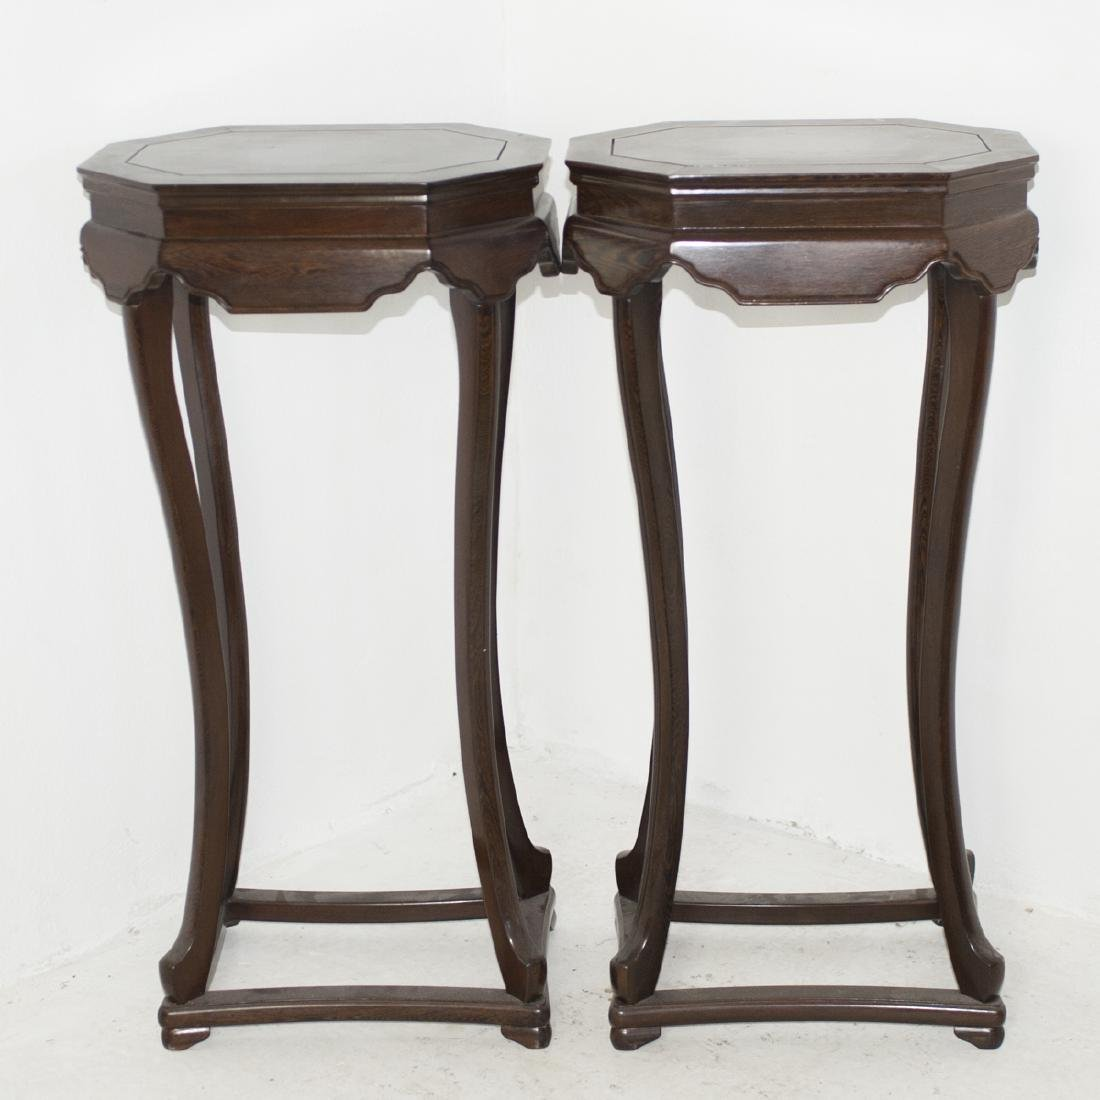 Carved Chinese Wooden Pedestals